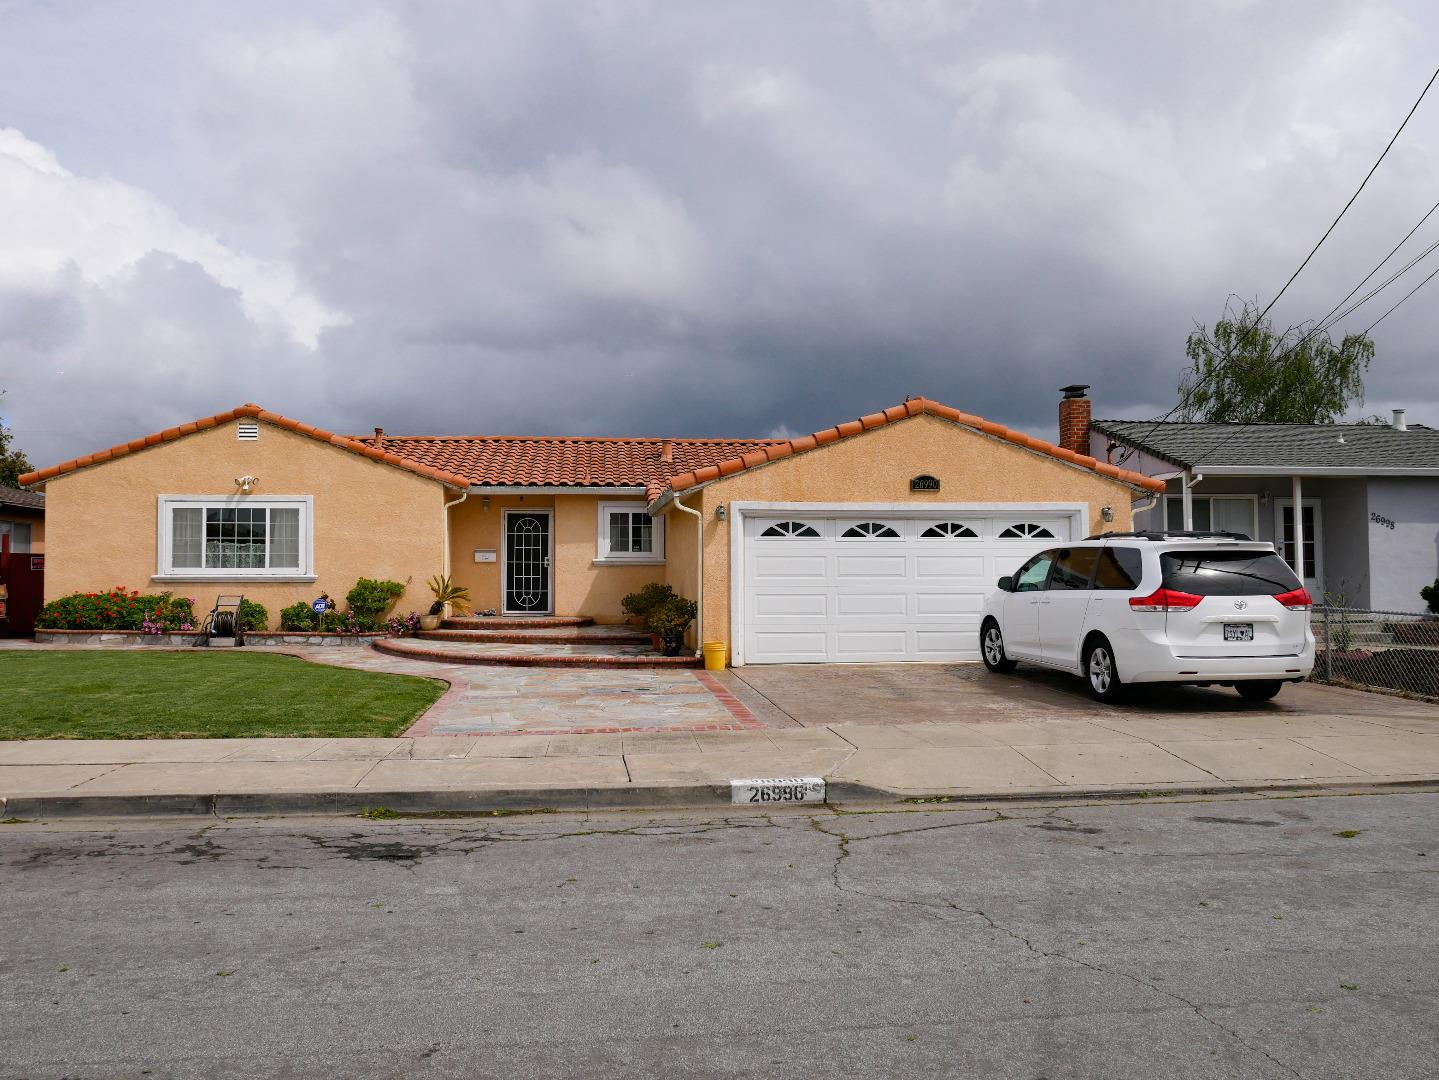 Additional photo for property listing at 26990 Jennings Way 26990 Jennings Way Hayward, California 94544 United States